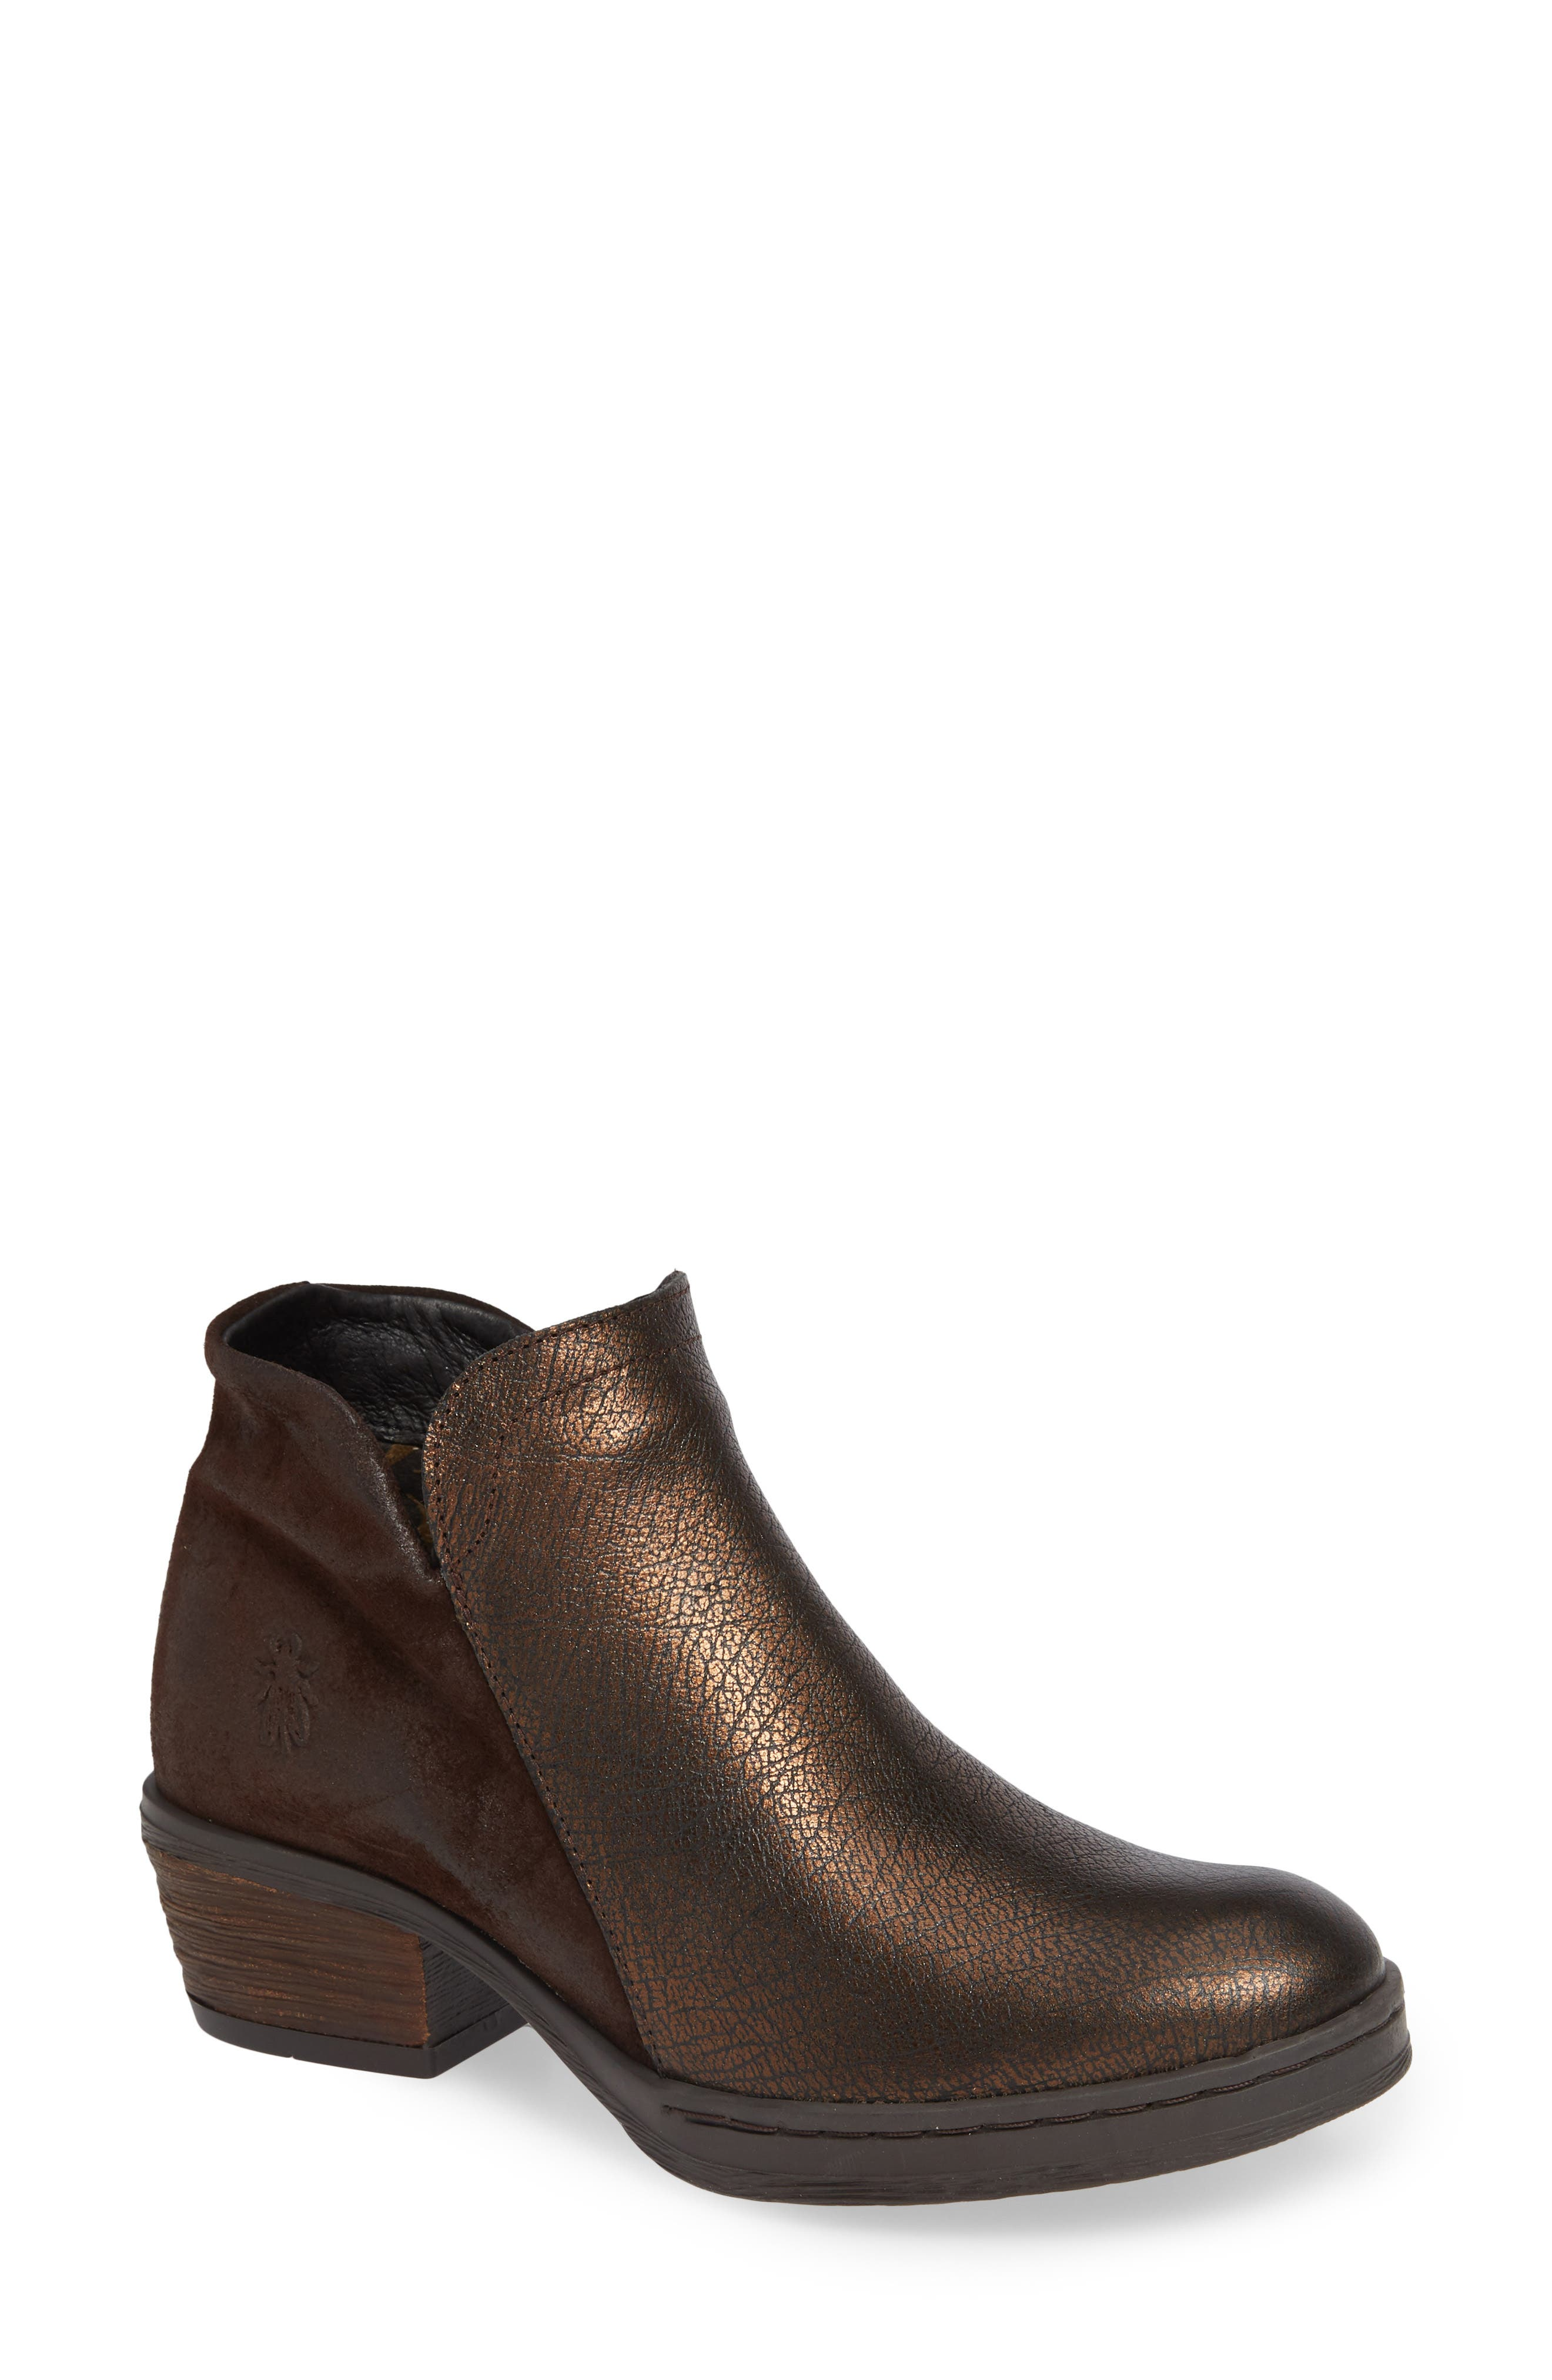 Fly London Cled Bootie - Brown